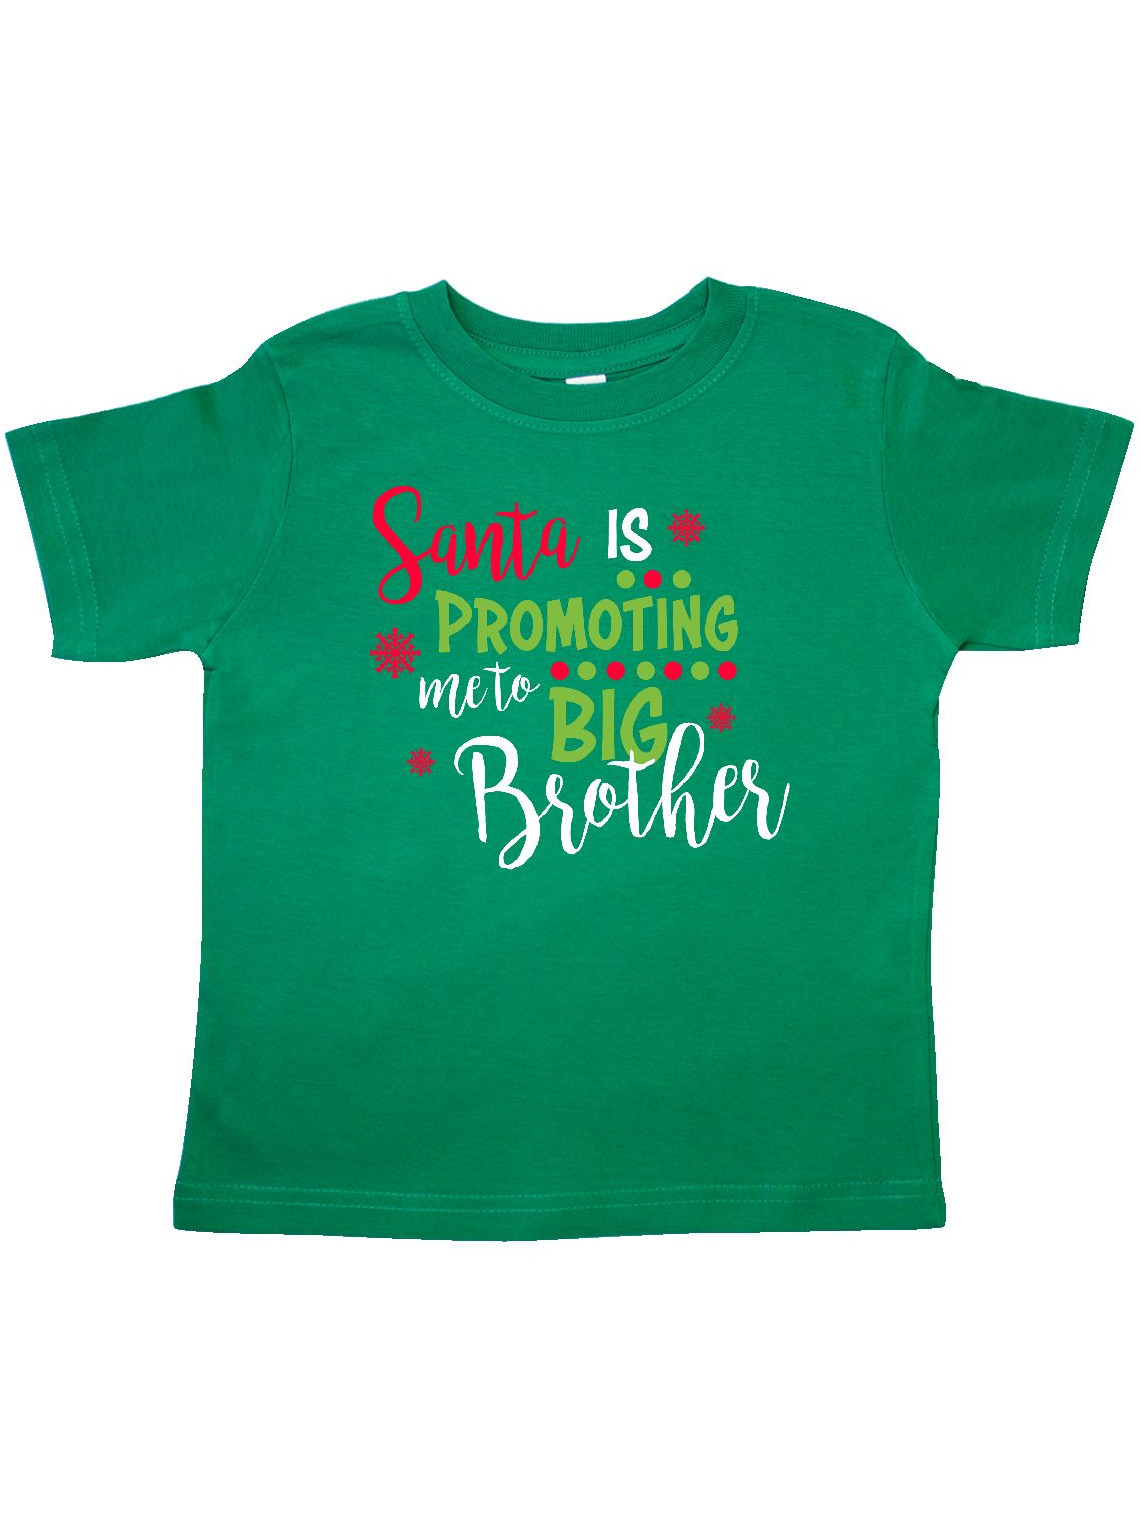 Santa is promoting me to Big Brother Toddler T-Shirt